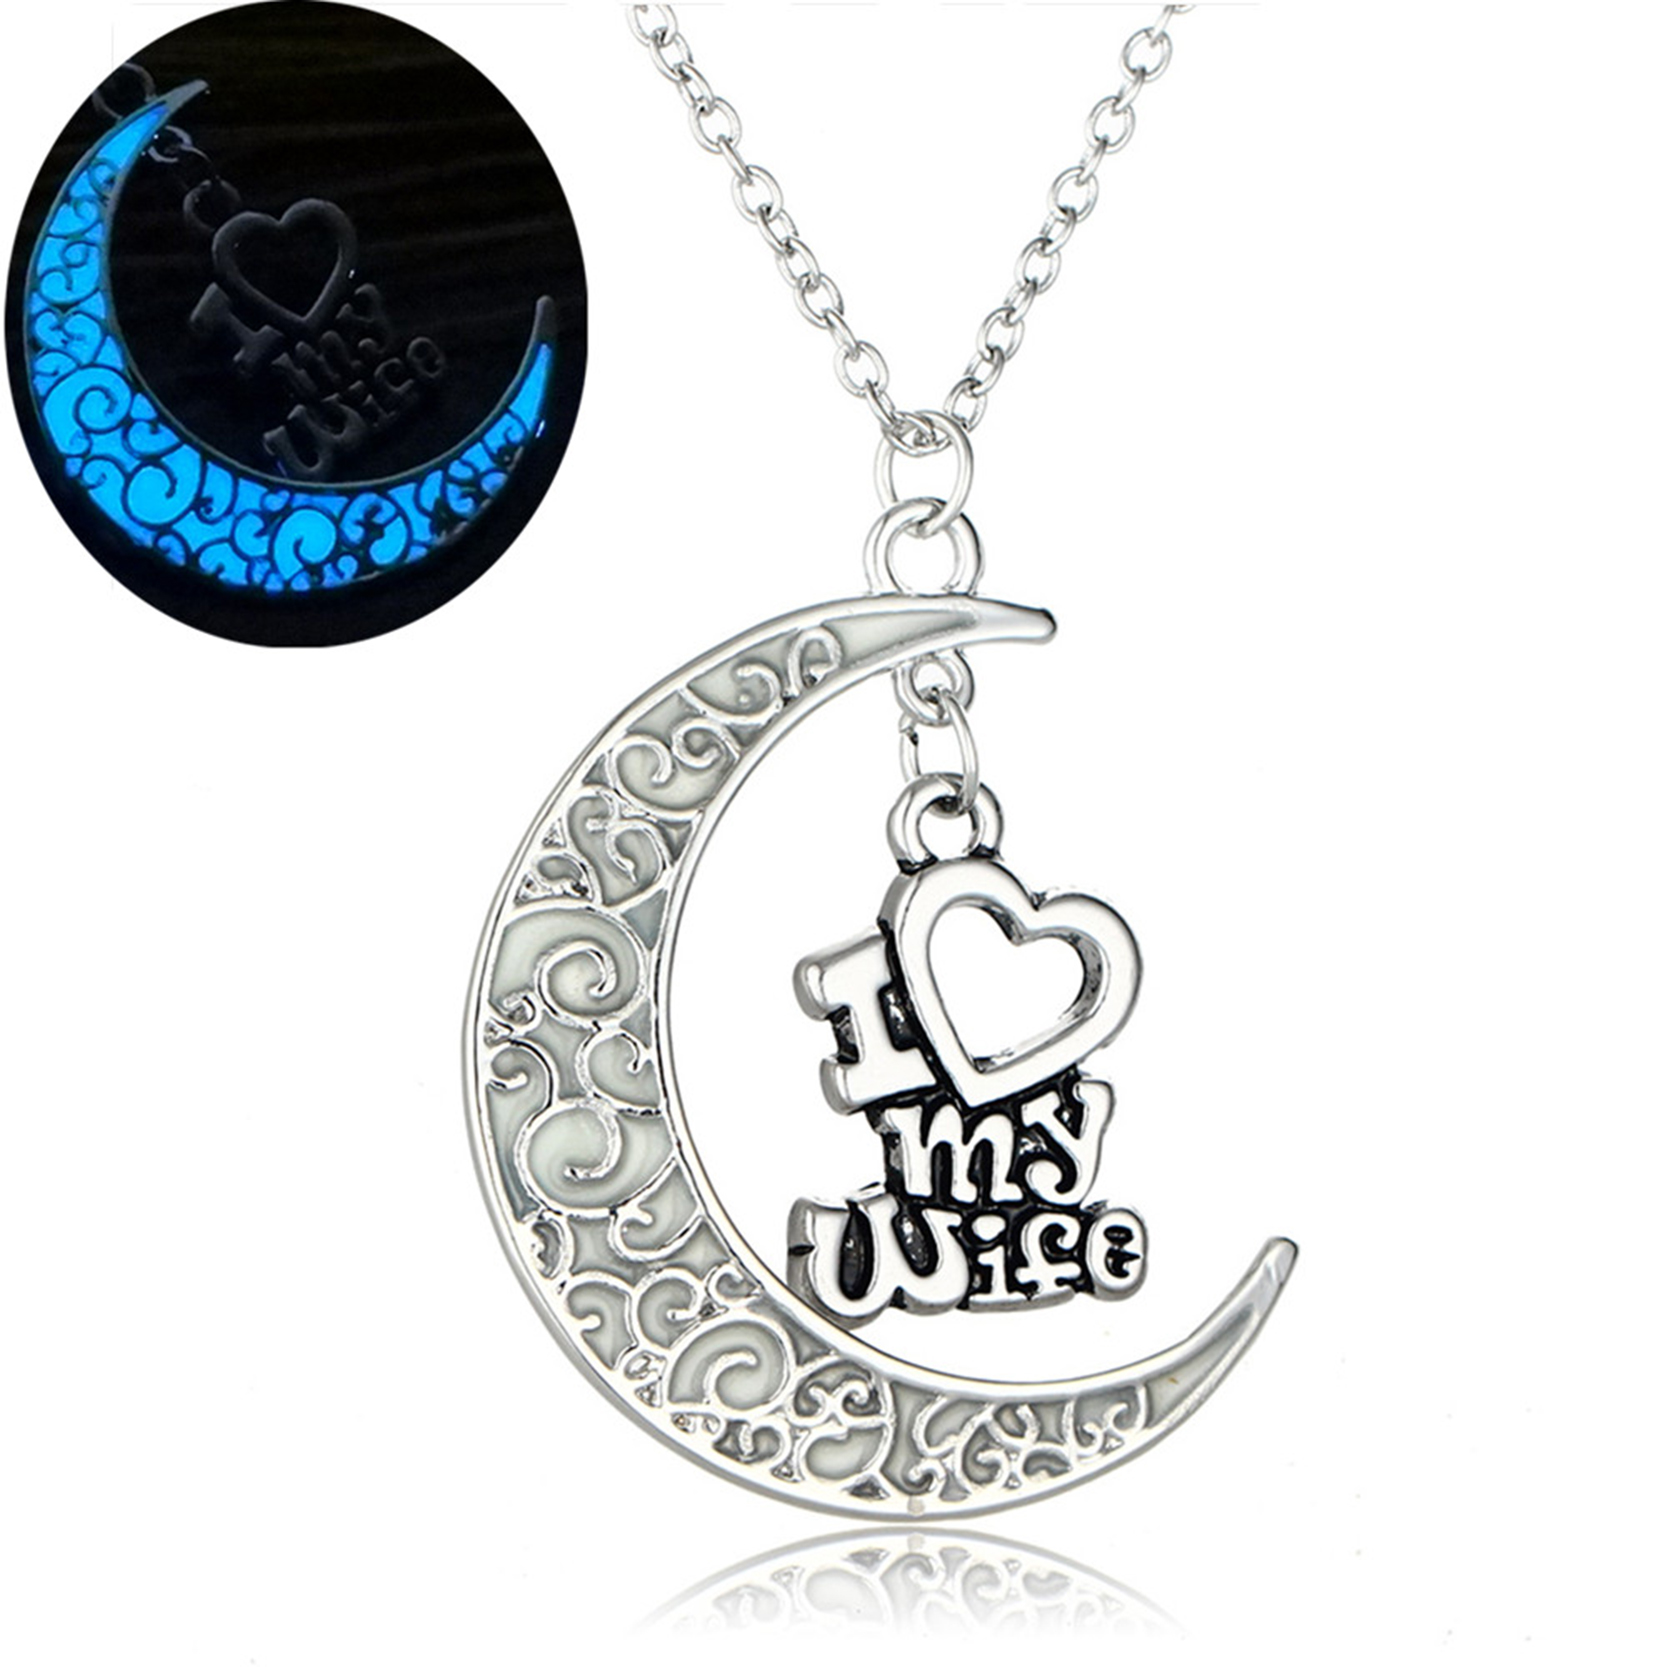 Retro Style Jewelry Silver Color with Crescent Letter